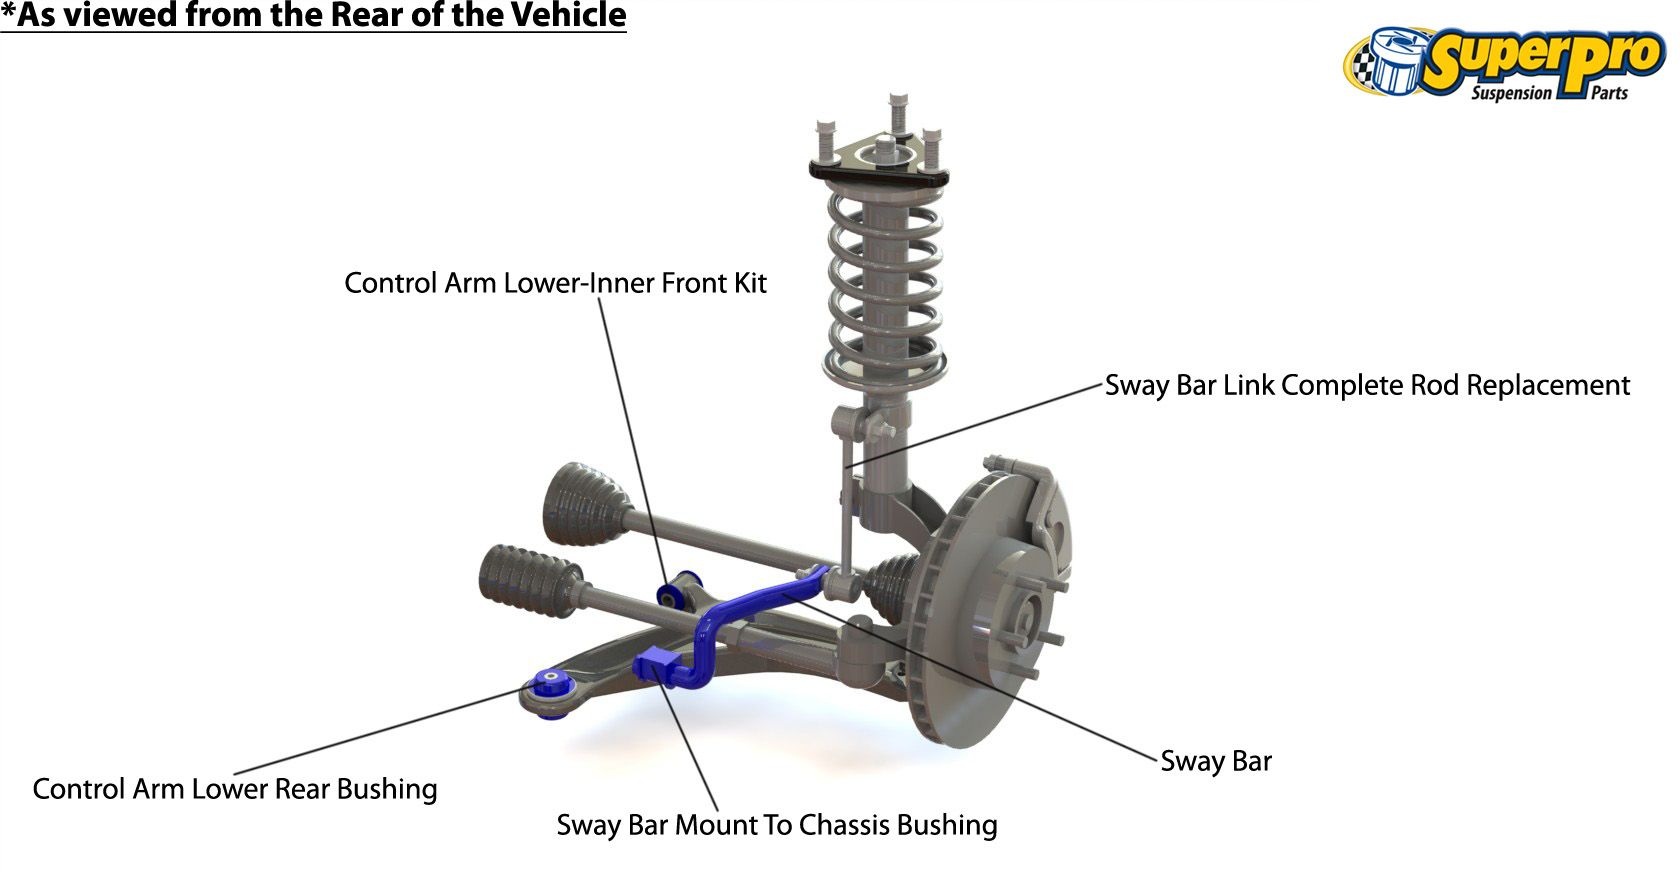 front suspension diagram for subaru impreza wrx sti gv 2007 2011 [ 1680 x 873 Pixel ]